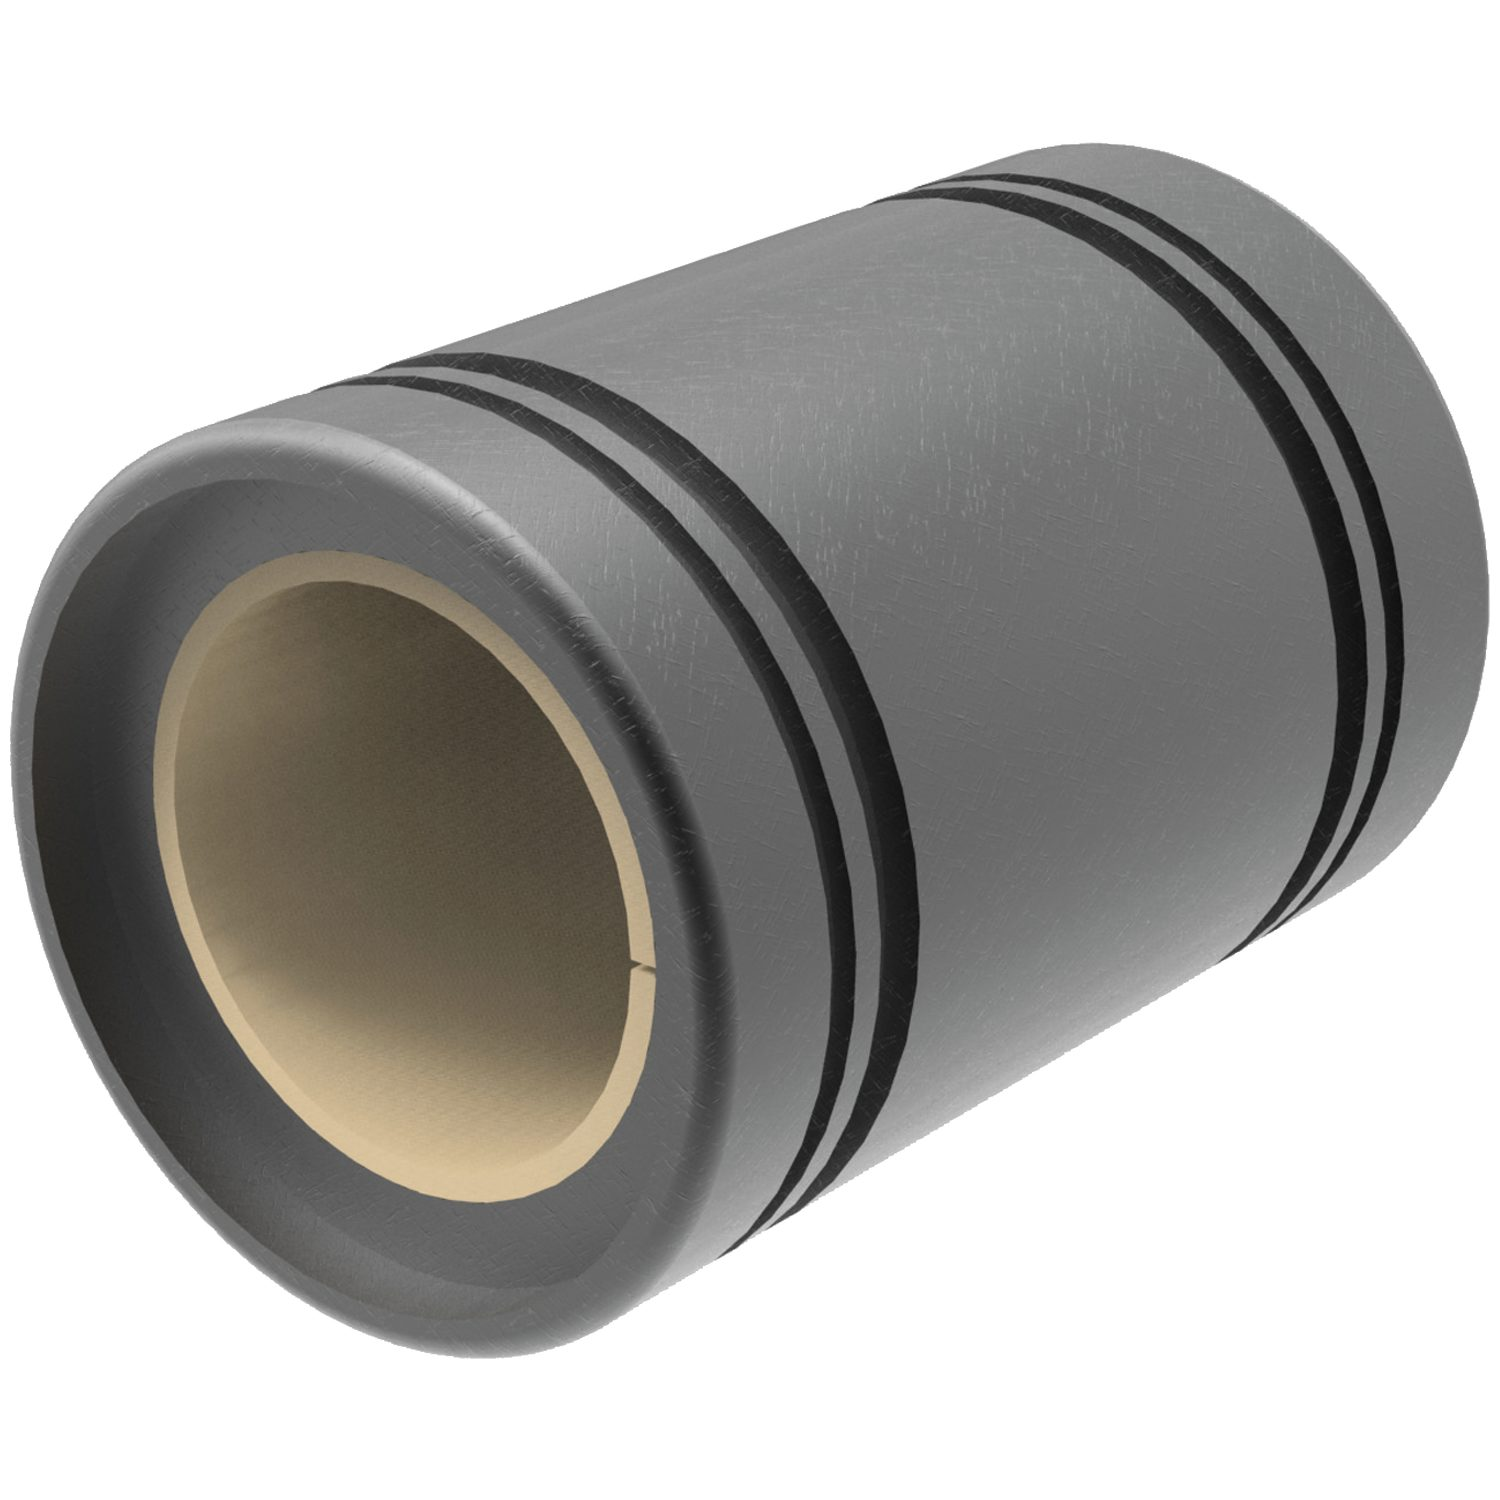 L1765 - Ceramic Closed Linear Bearings